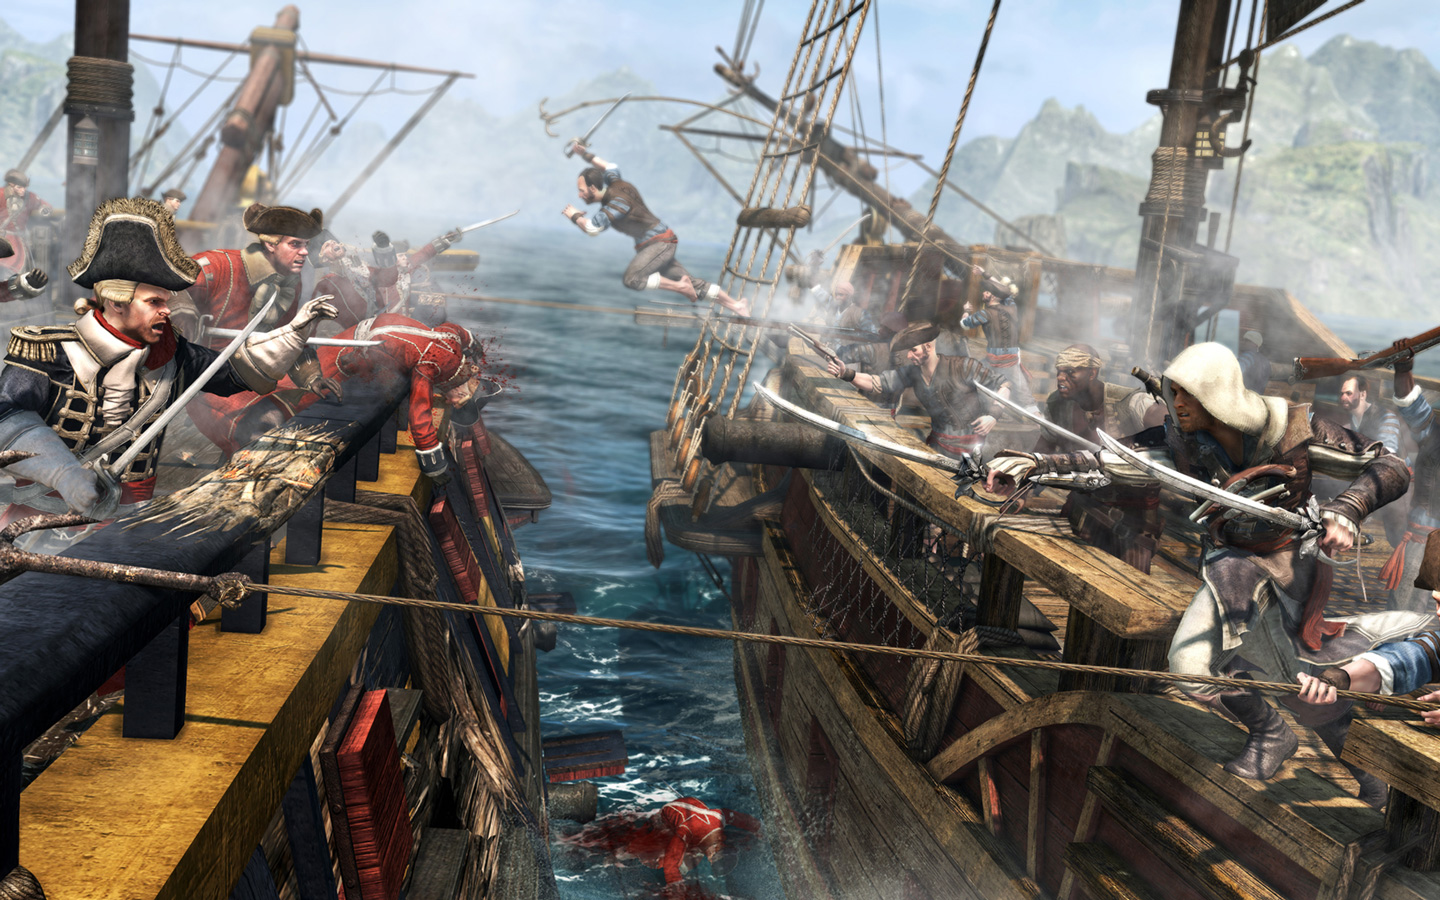 Free Assassin's Creed IV: Black Flag Wallpaper in 1440x900